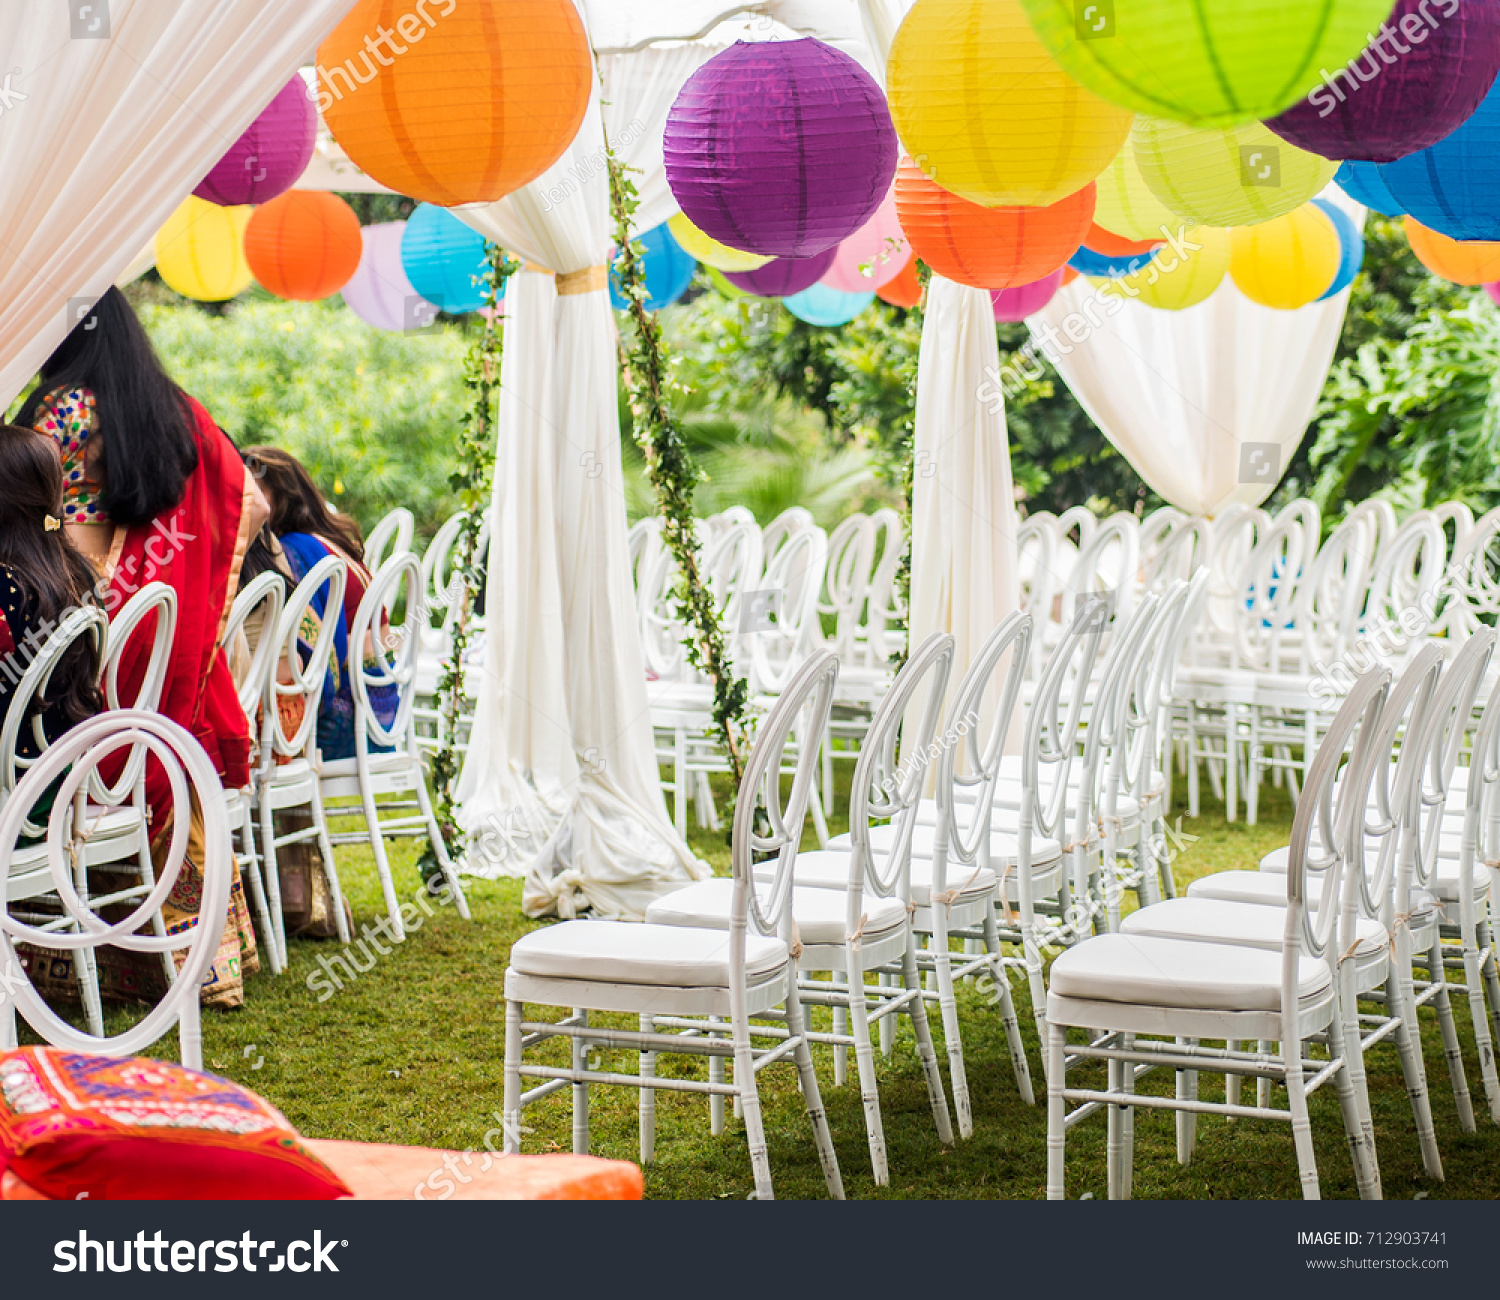 Colorful Outdoor Lawn Tent Garden Setting Stock Photo (Royalty Free ...